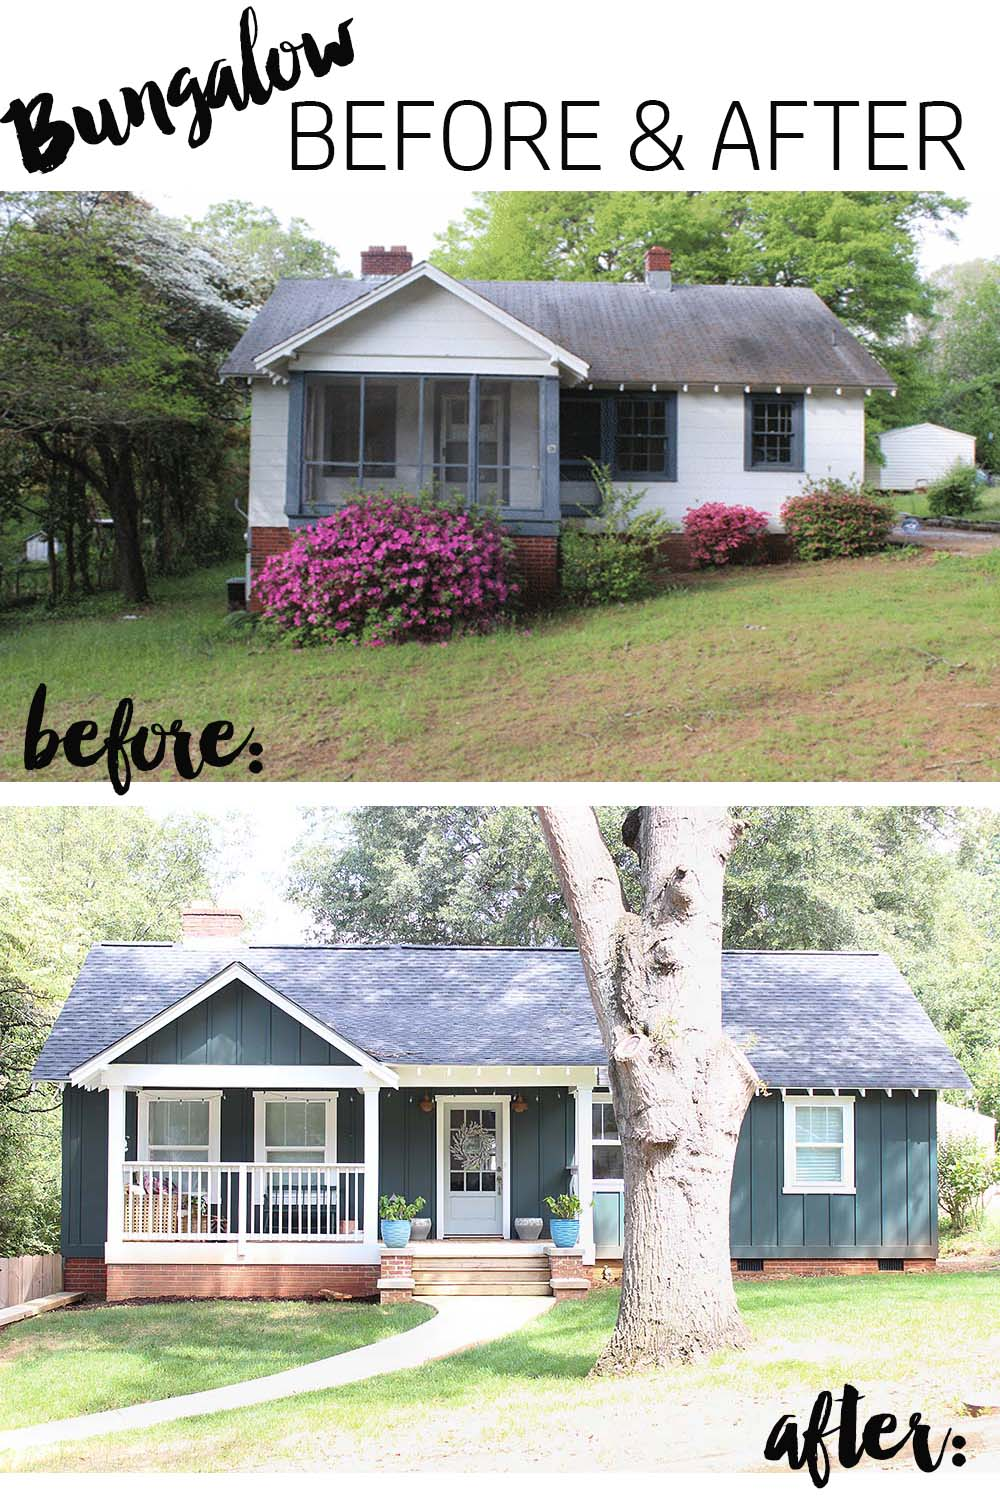 Our bungalow exterior before after for Exterior bungalow renovations before and after